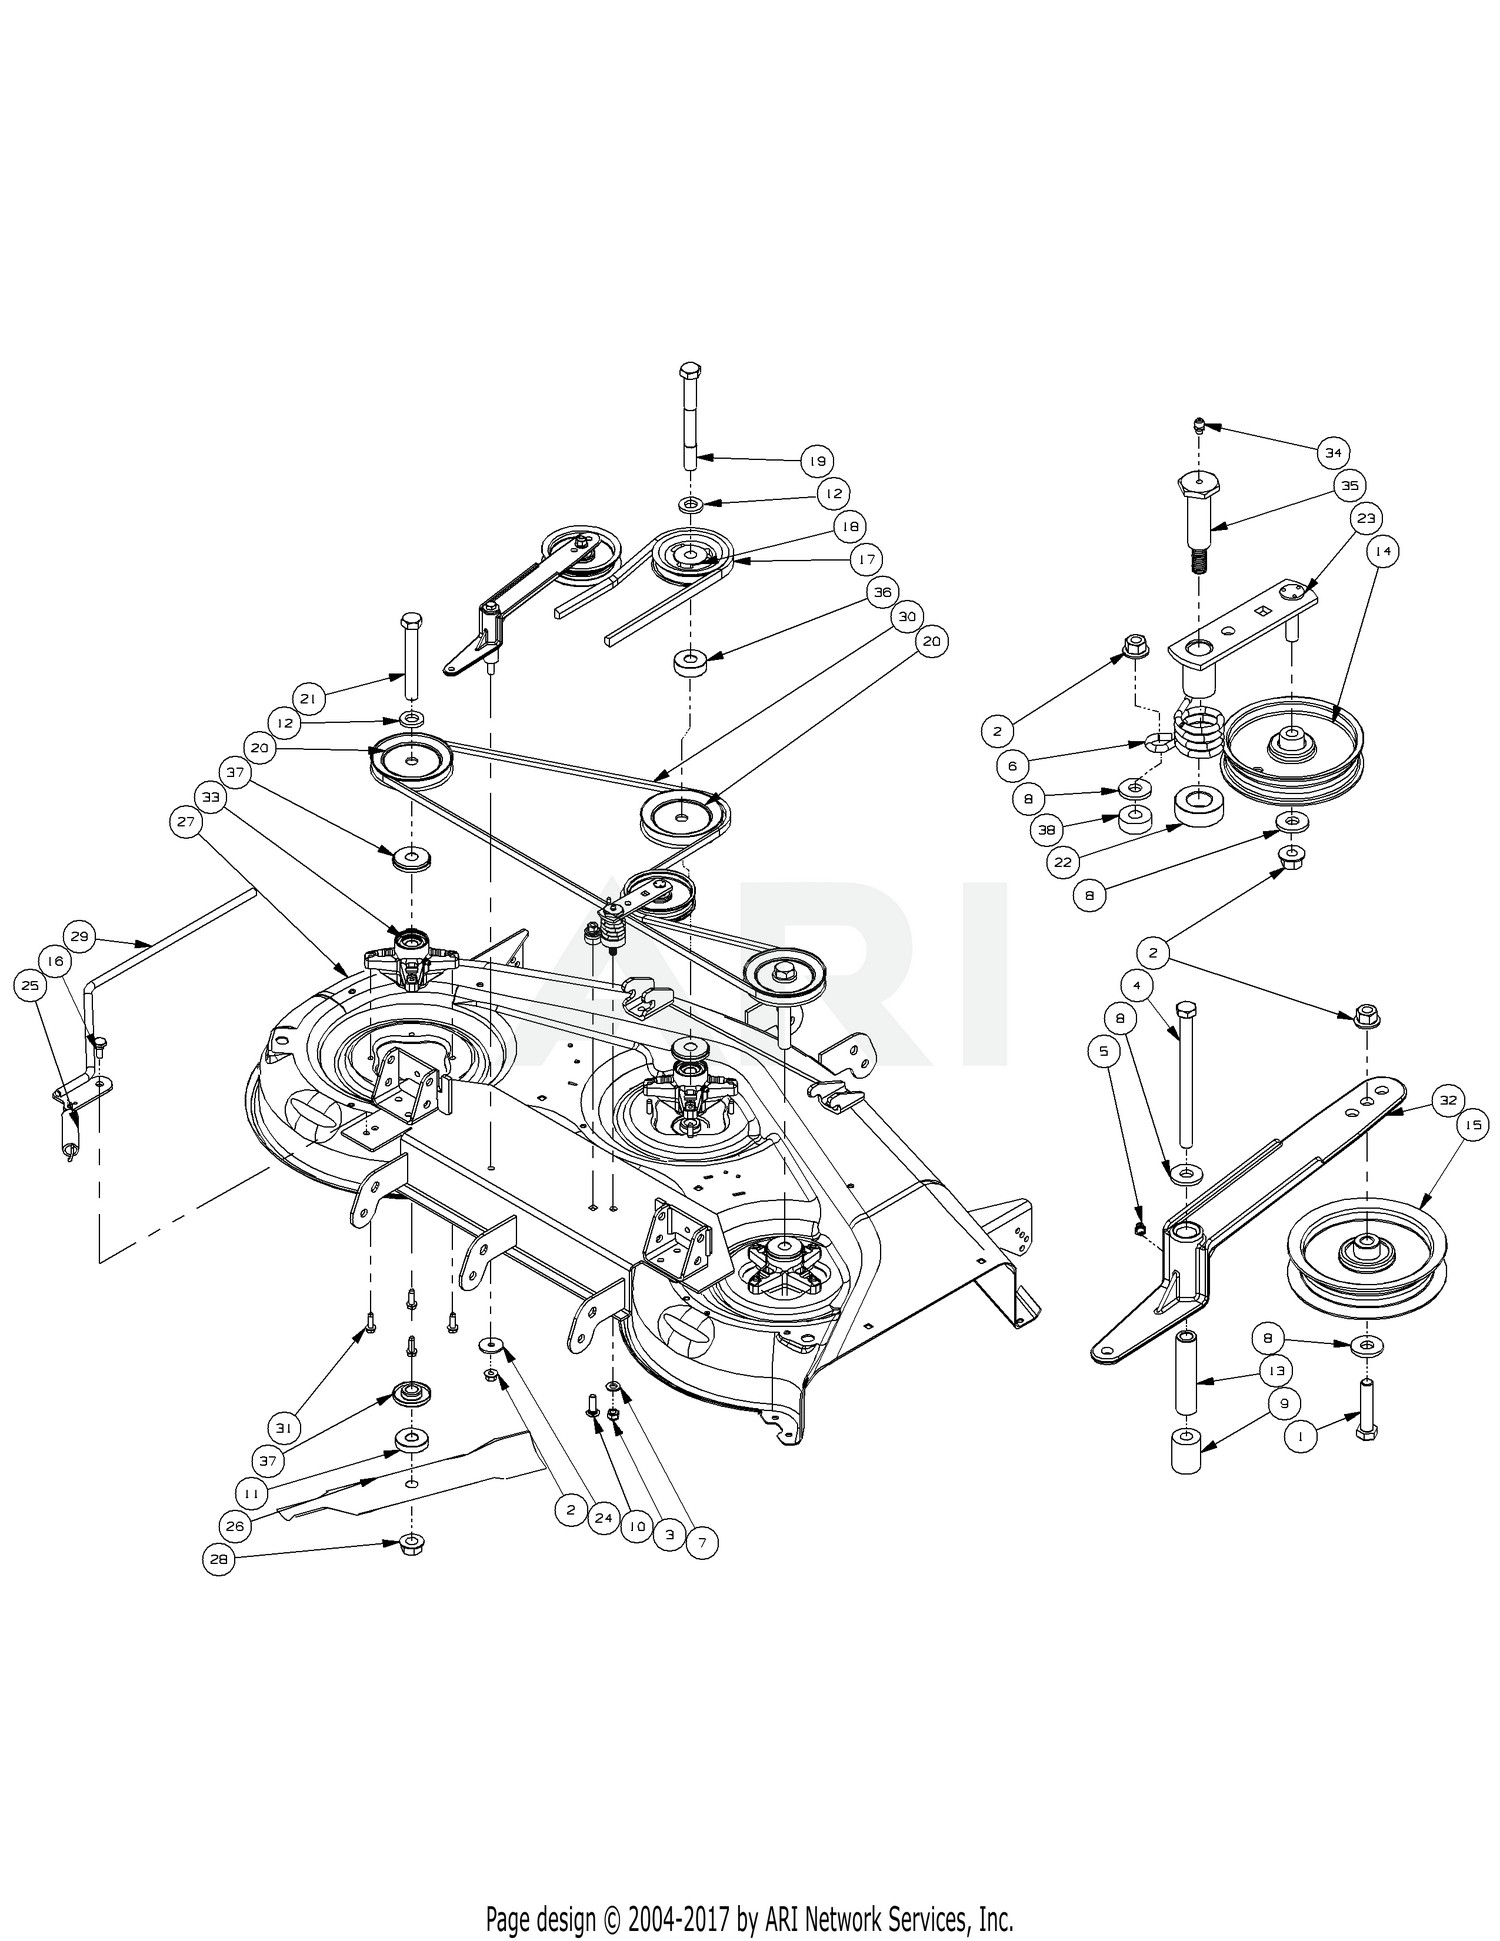 Cub Cadet Zero Turn Parts Diagram Cub Cadet Rzt 50